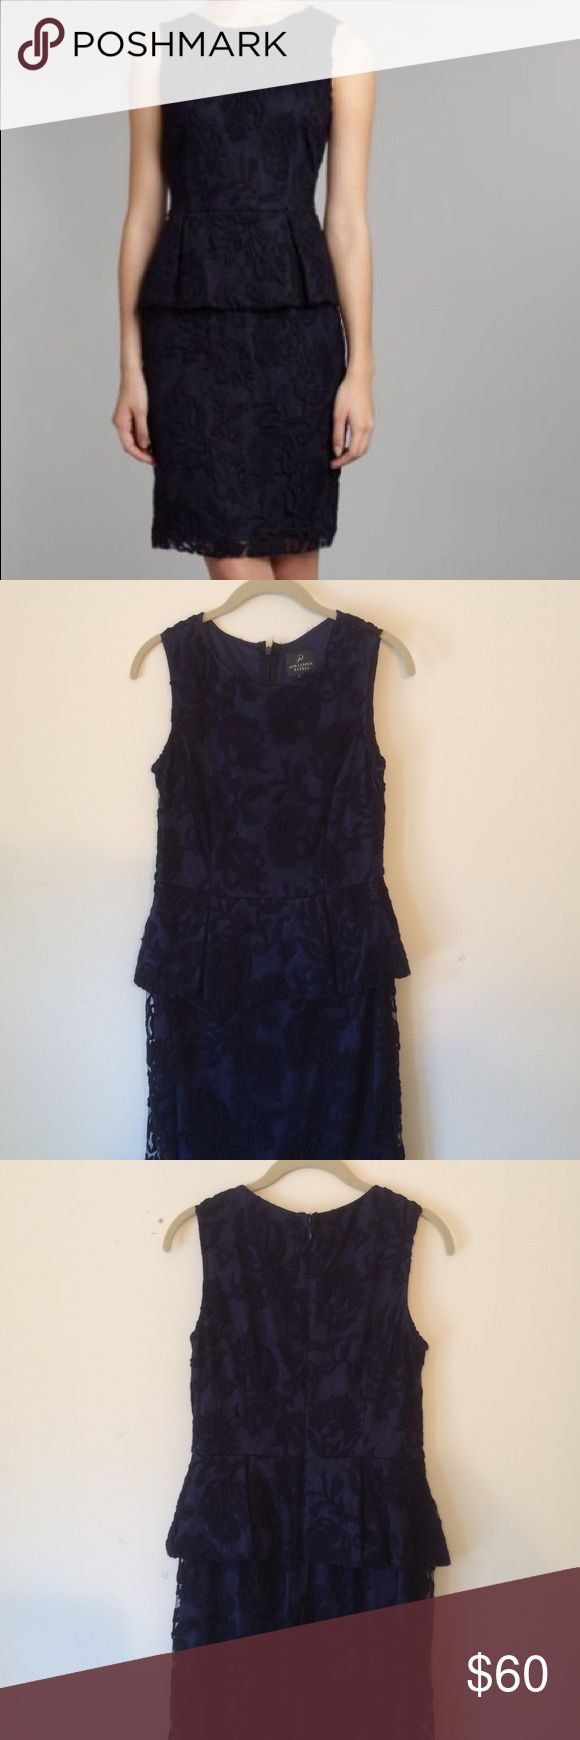 Adrianna Papell Navy Cocktail Dress Navy sheath dress with subtle peplum waist. Lace shell over navy liner. Hits above the knee. Very pretty but no longer fits due to...late in life growth spurt. Adrianna Papell Dresses